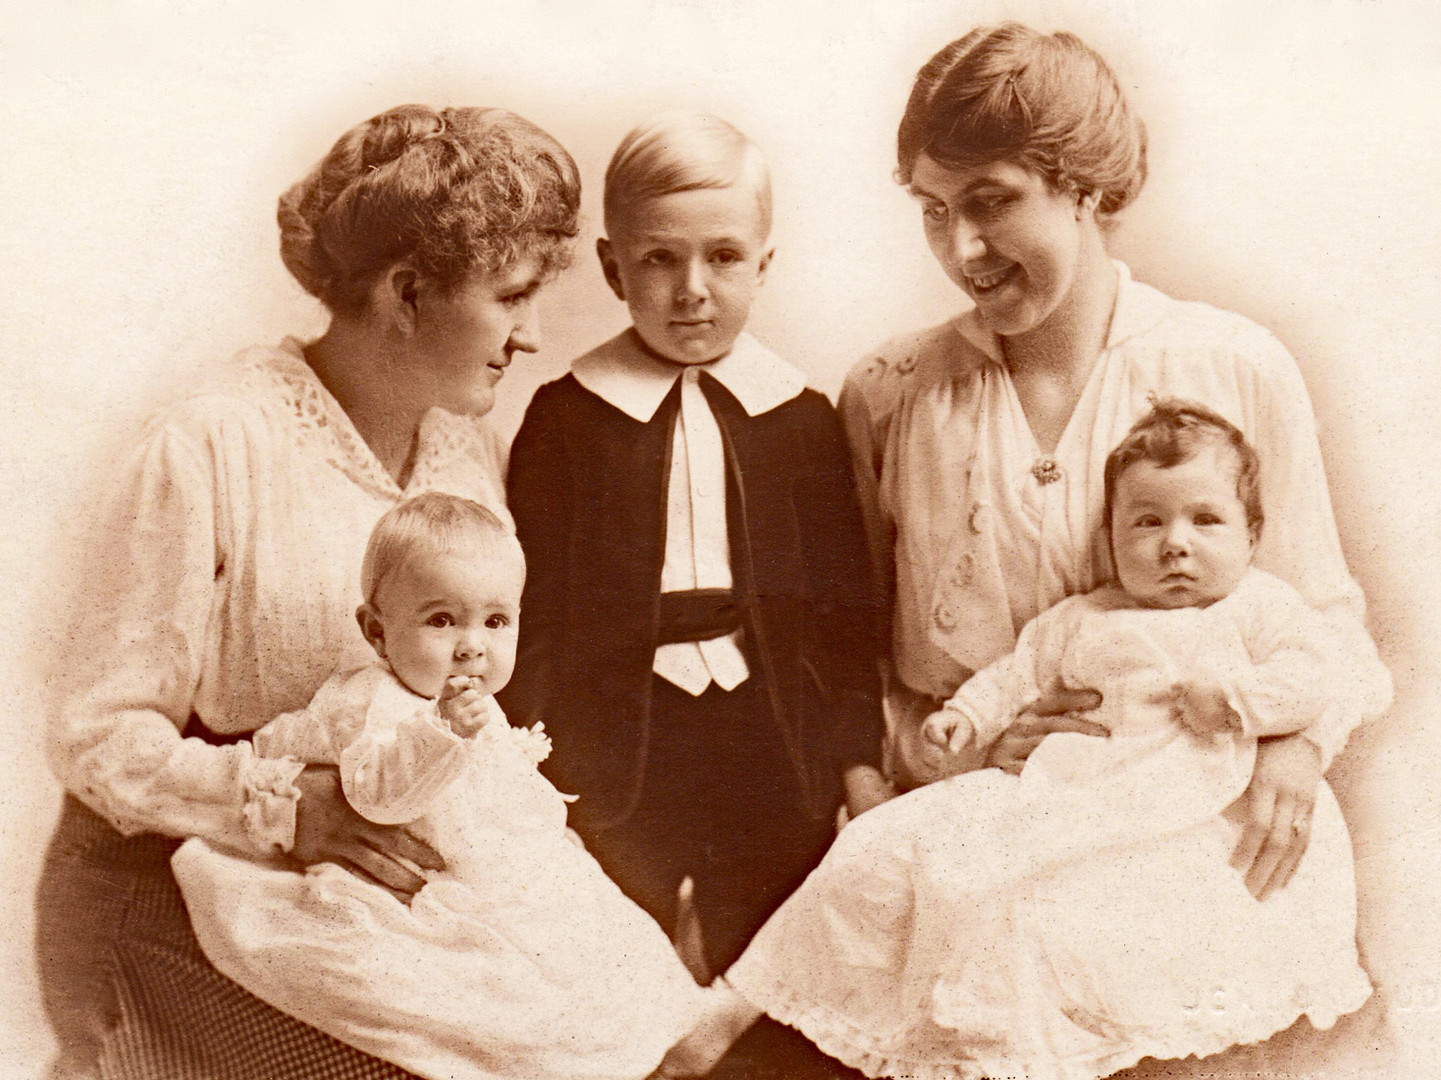 William & Emma Riedlin's Daughters & Grandchildren, c. 1916.